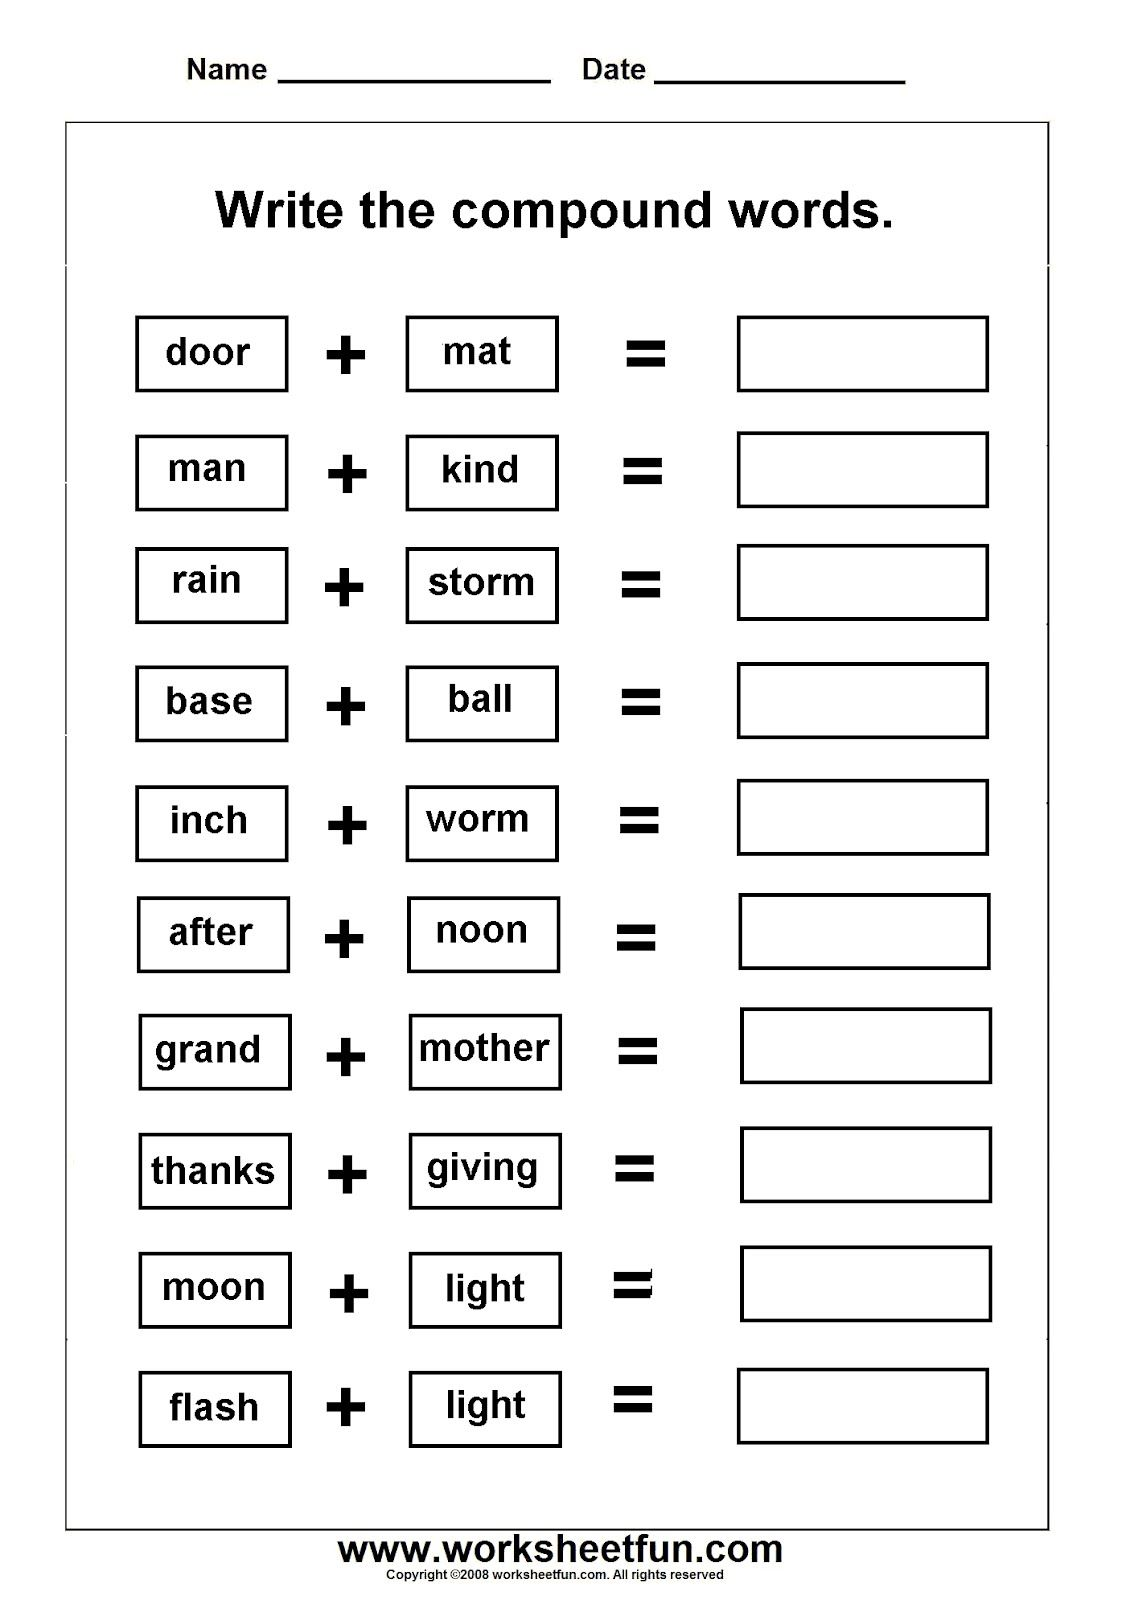 Workbooks inflectional endings first grade worksheets : compound words worksheets | Compound Words | Pinterest ...